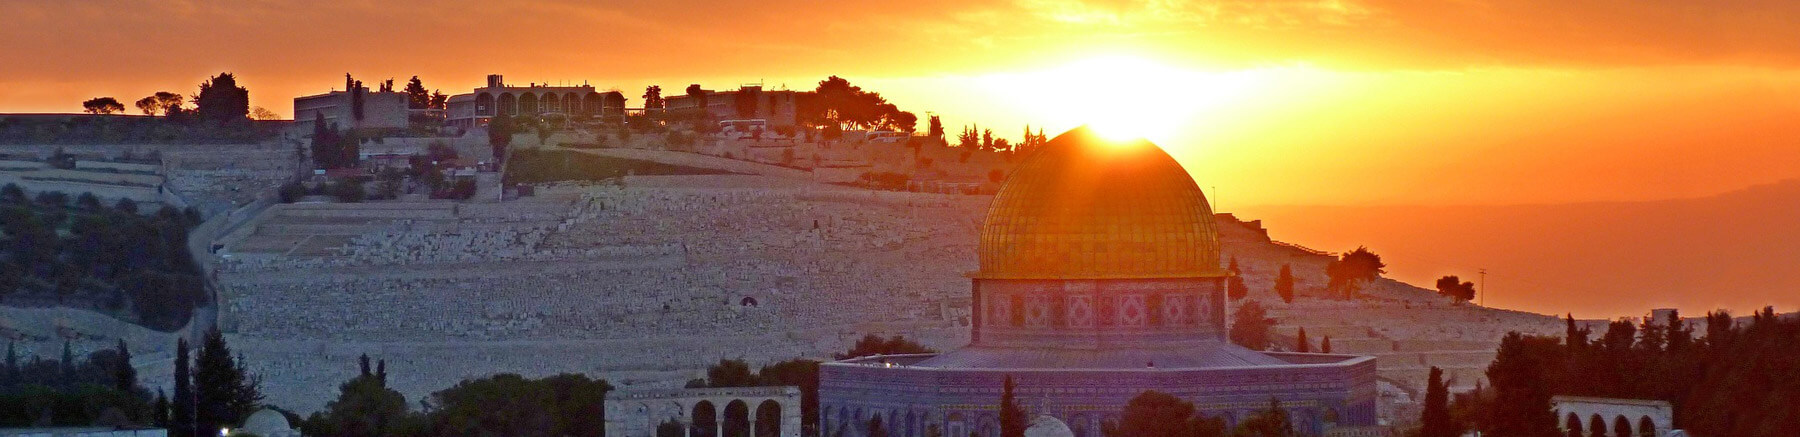 Sunrise over the Dome of the Rock in Jerusalem, Israel